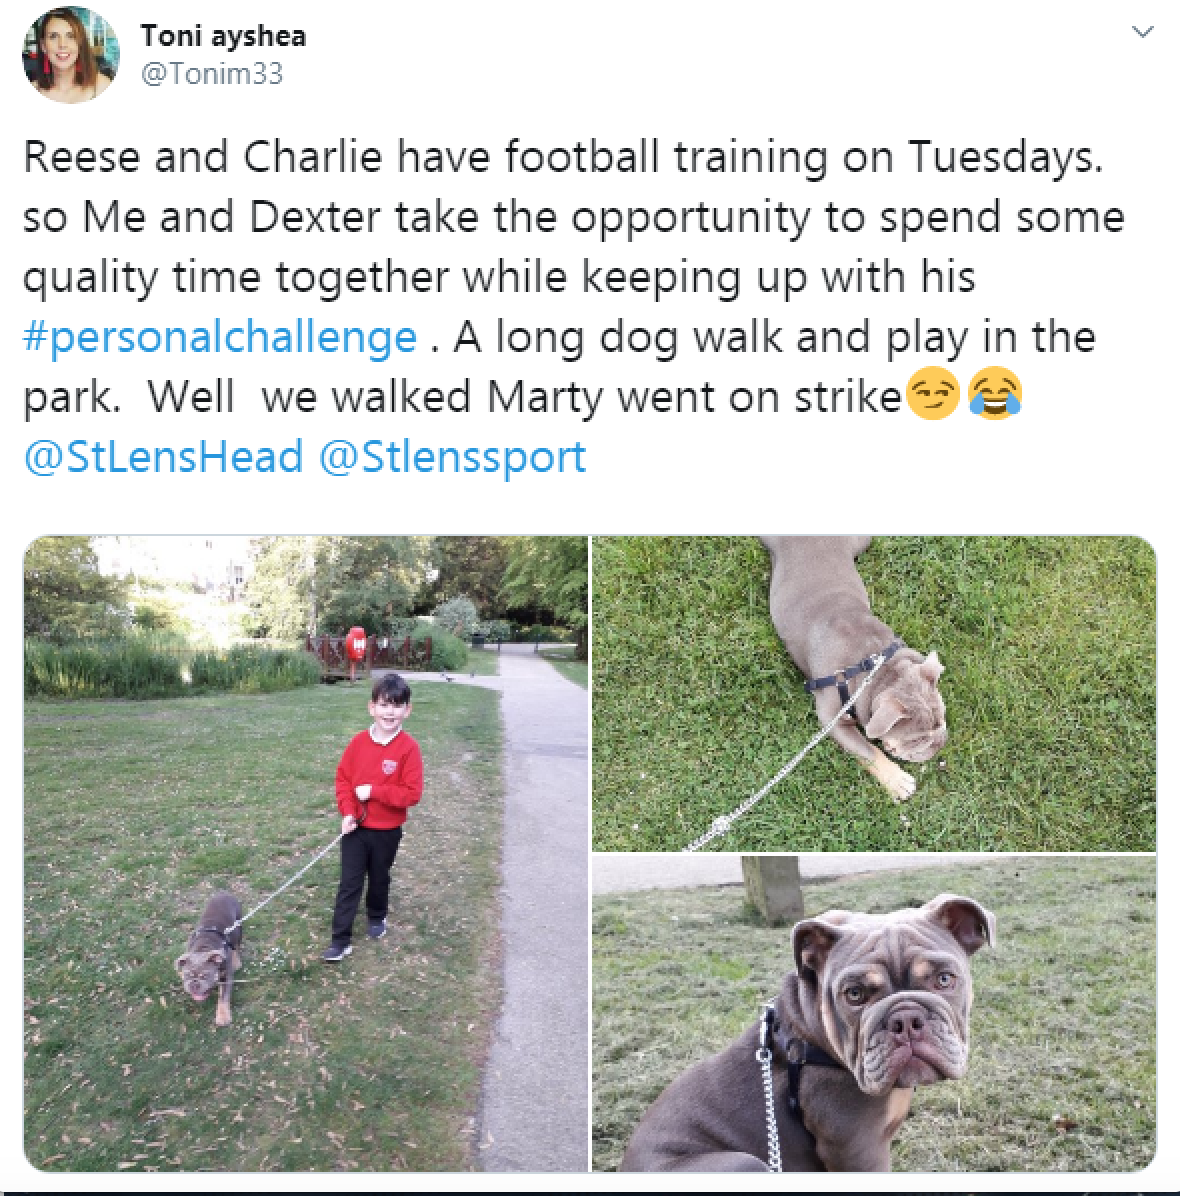 tweet from a family involved in the challenge showing them on a dog walk